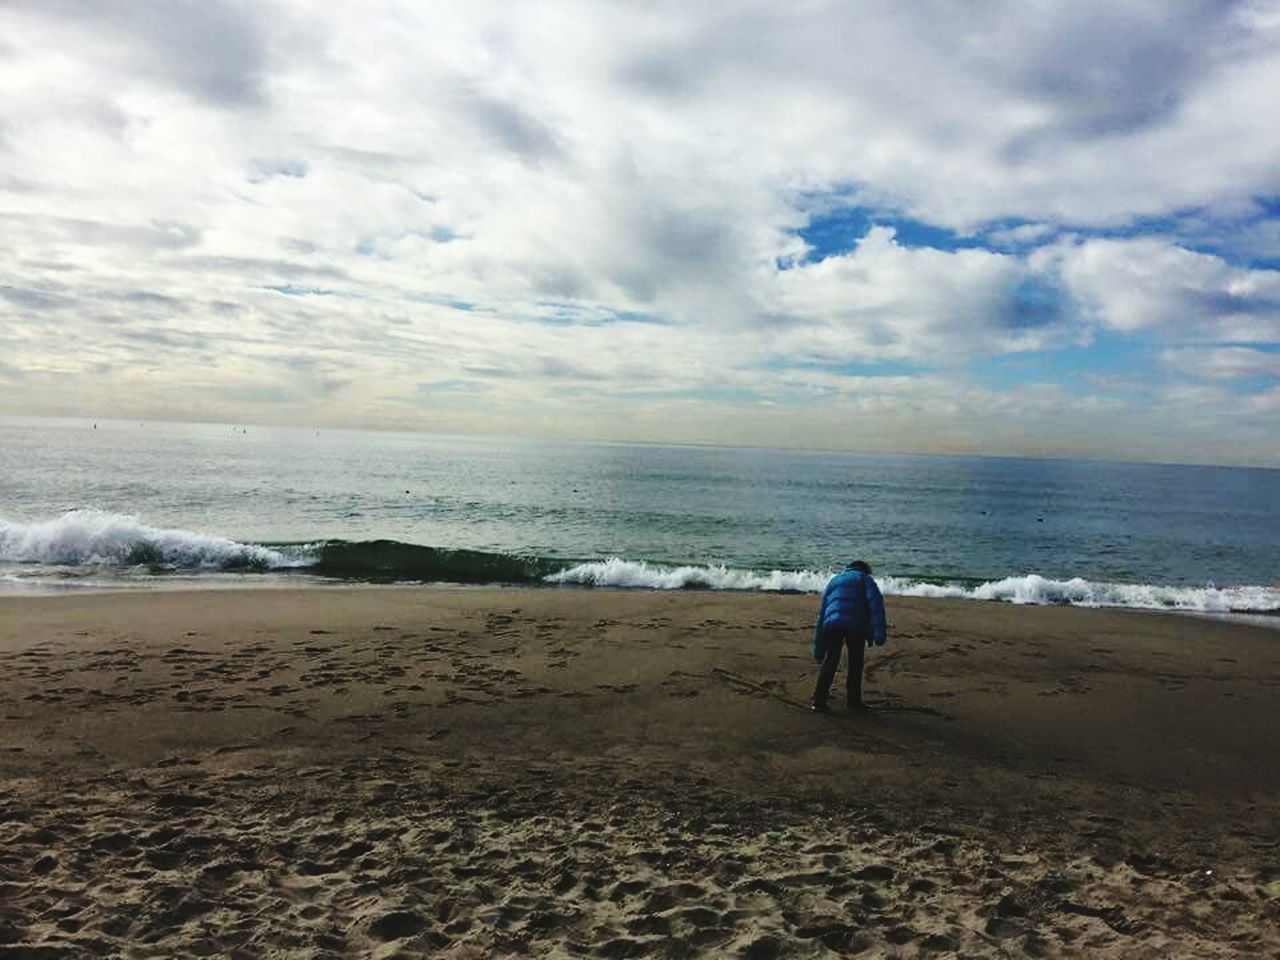 sea, beach, horizon over water, sky, sand, nature, one person, beauty in nature, water, cloud - sky, full length, rear view, scenics, tranquil scene, one man only, vacations, men, wave, standing, outdoors, day, real people, only men, adult, people, adults only